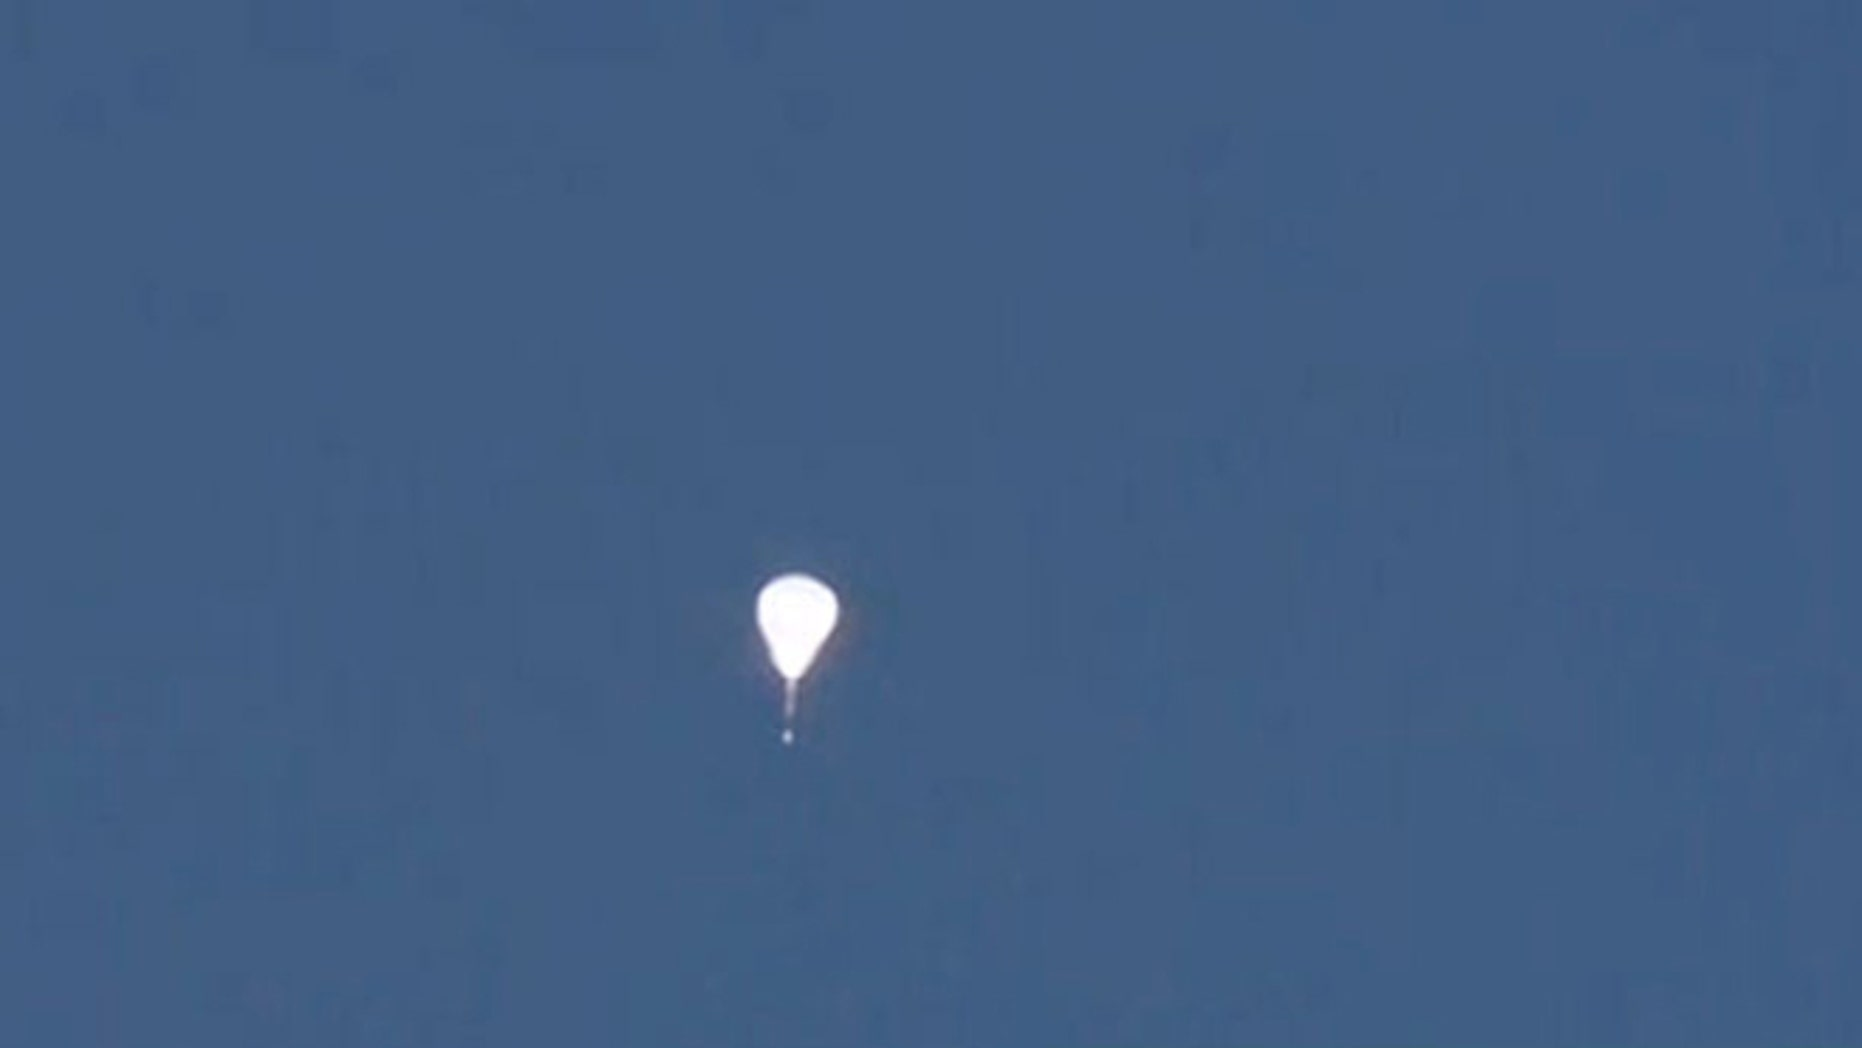 This mysterious, glowing teardrop-shaped object was seen high in the sky above Phoenix.